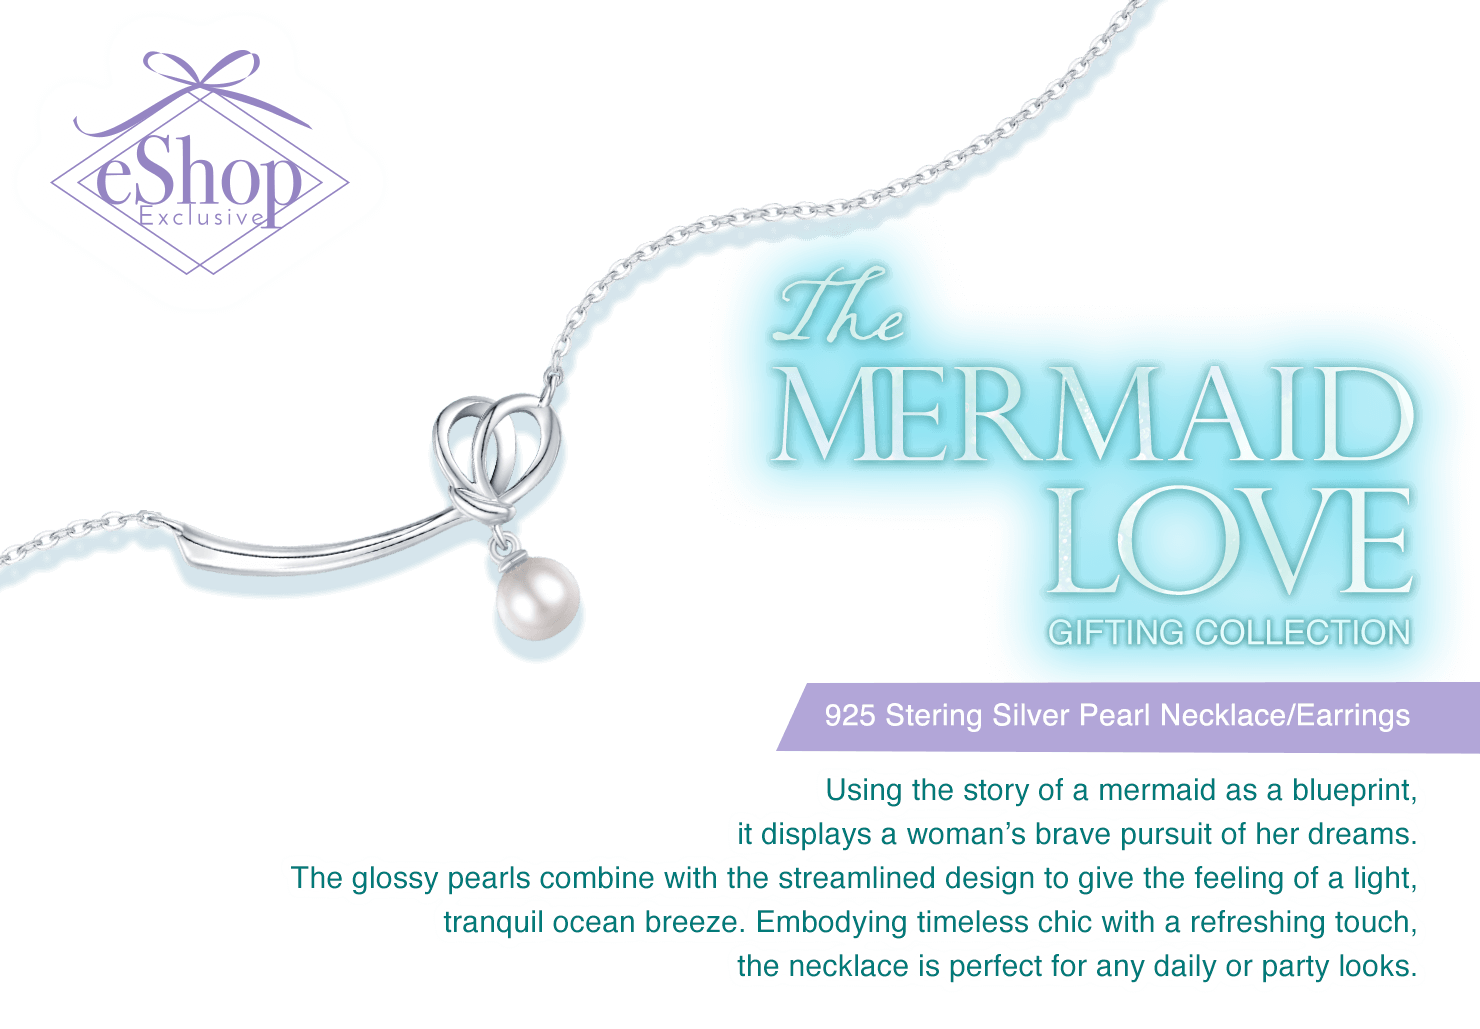 The Mermaid Love Gifting Collection is using the story of a mermaid as a blueprint, it displays a woman's brave pursuit of her dreams.The glossy pearls combine with the streamlined design to give the feeling of a light, tranquil ocean breeze.Embodying timeless chic with a refreshing touch, the necklace is perfect for any daily or party looks.